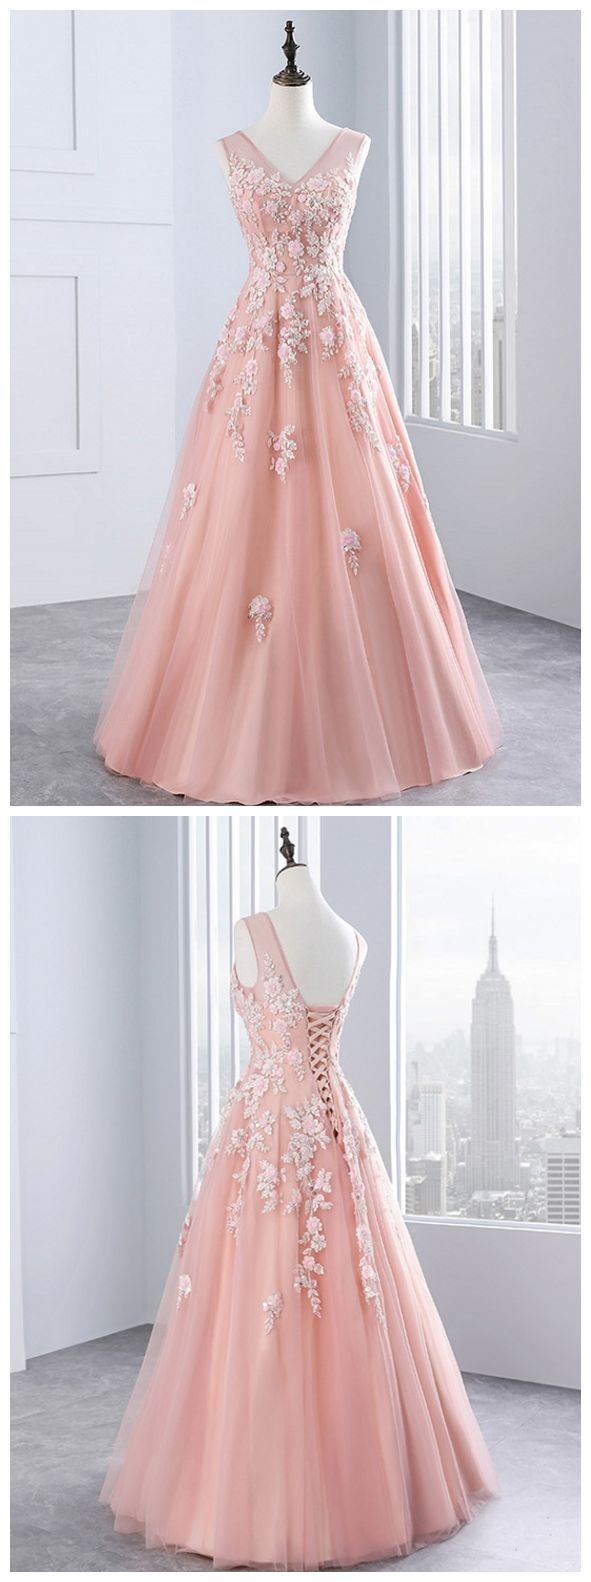 289 best deco images on Pinterest | Ball gown, Classy dress and ...